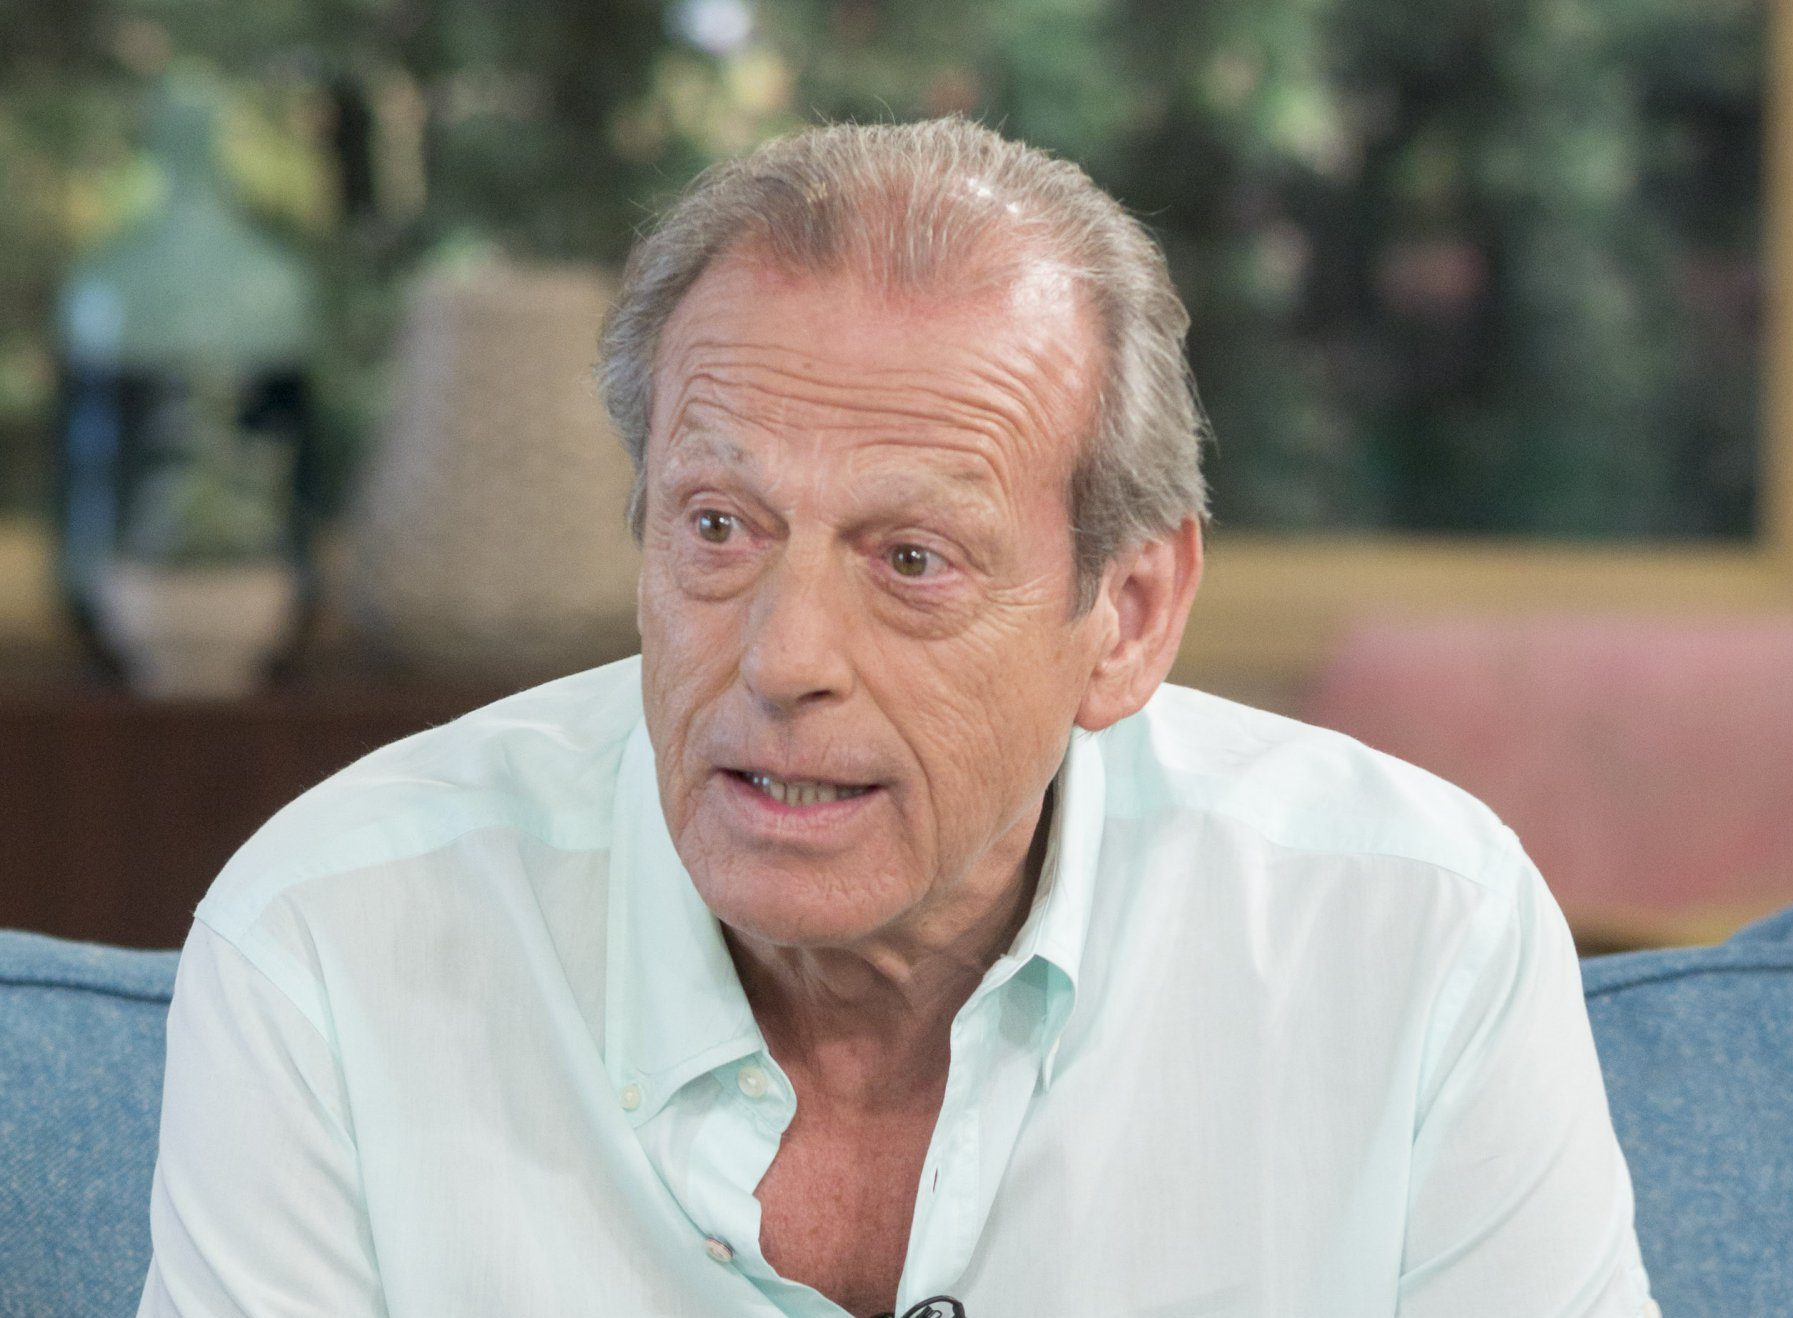 The turbulent life of EastEnders Den Watts actor Leslie Grantham from murder conviction to webcam scandal